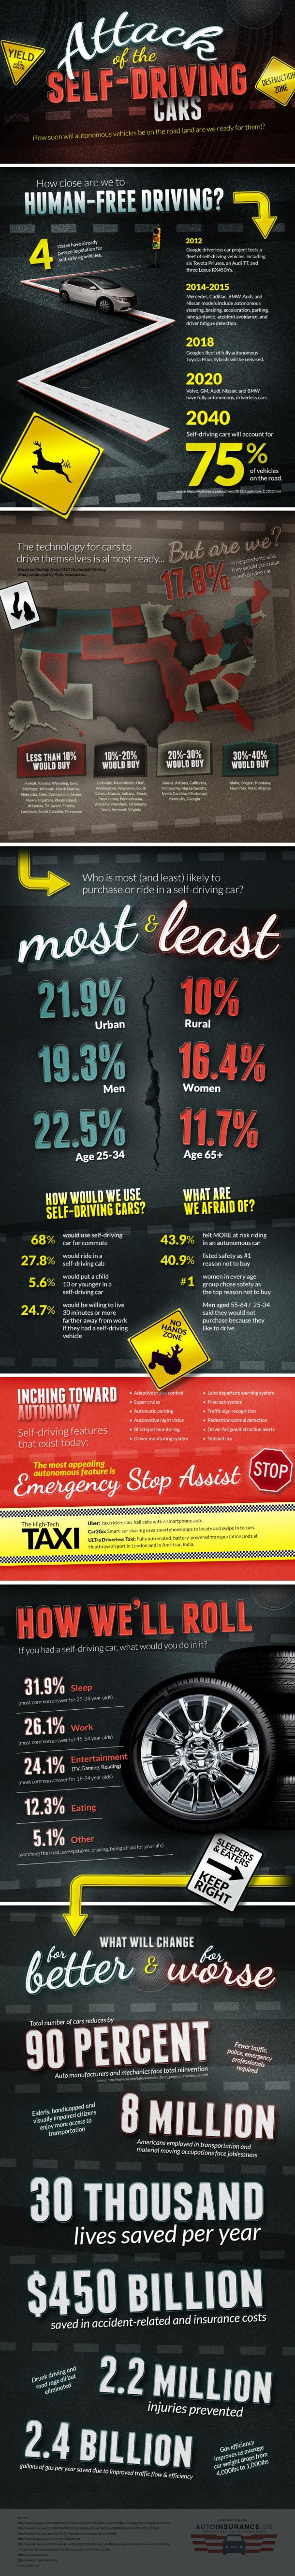 Attack Of The Self-Driving Cars[INFOGRAPHIC]. i like how the numbers between sexes are used together.